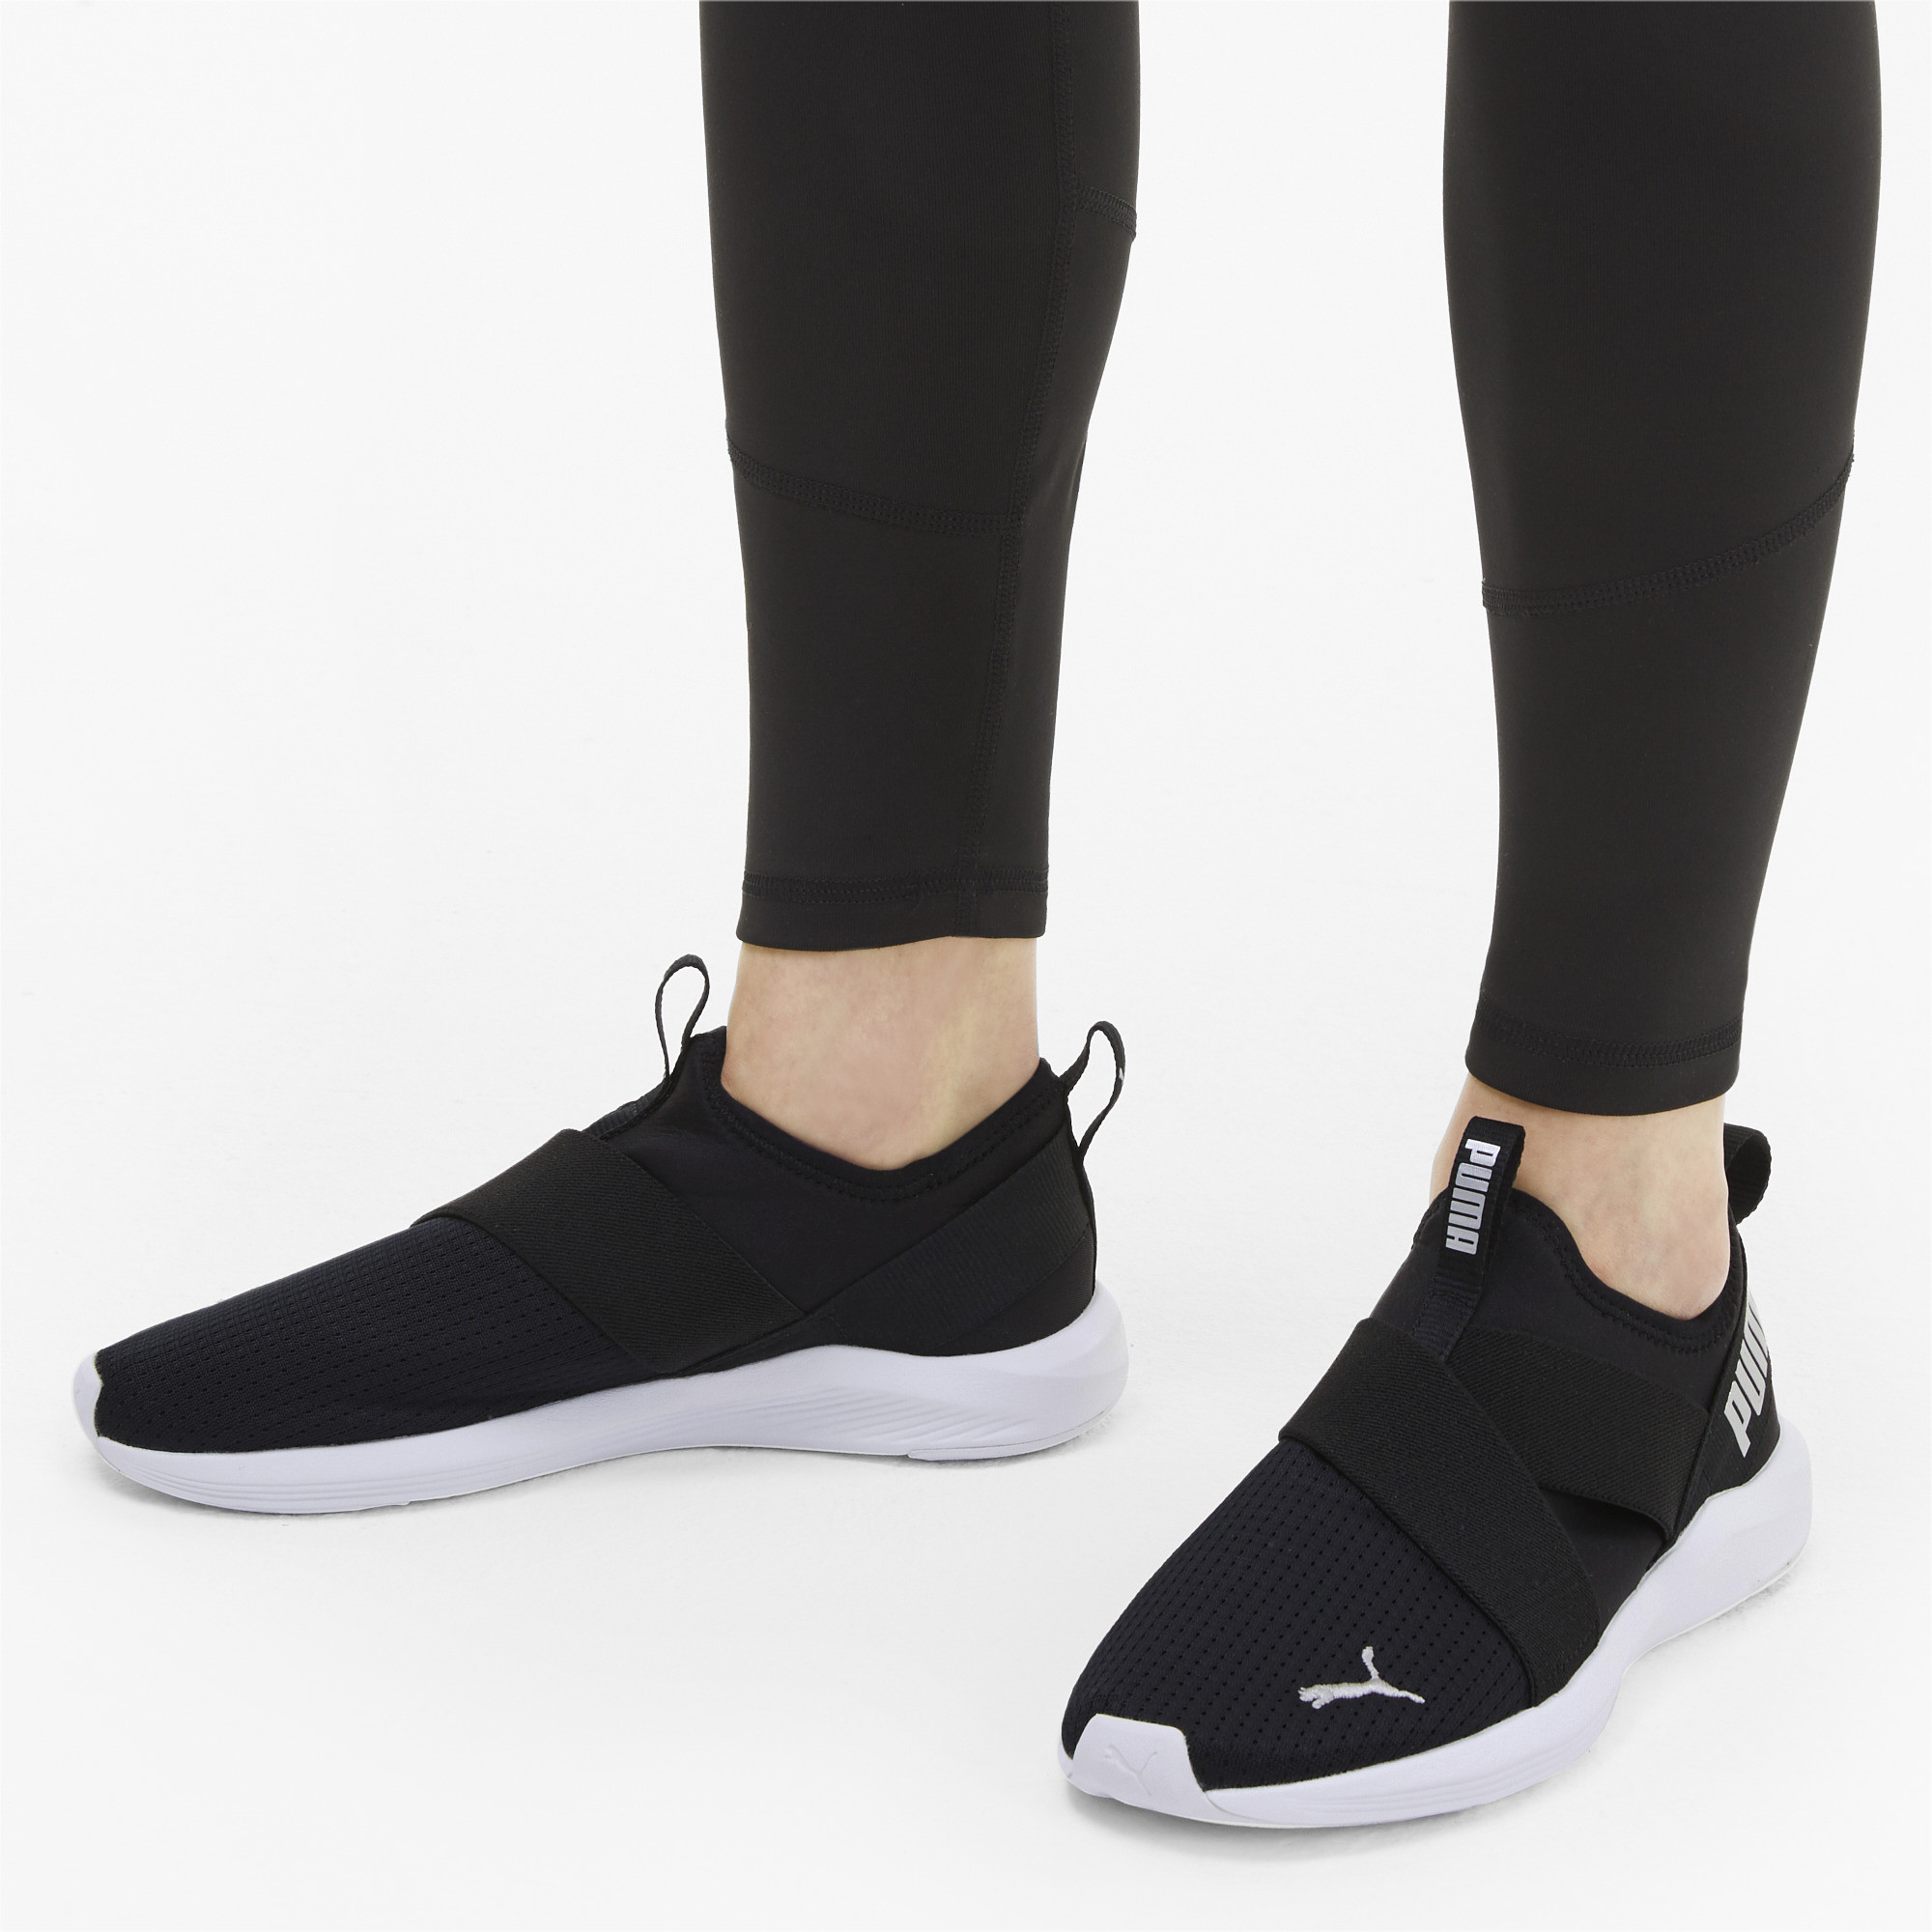 PUMA-Women-039-s-Prowl-Slip-On-Training-Shoes thumbnail 24